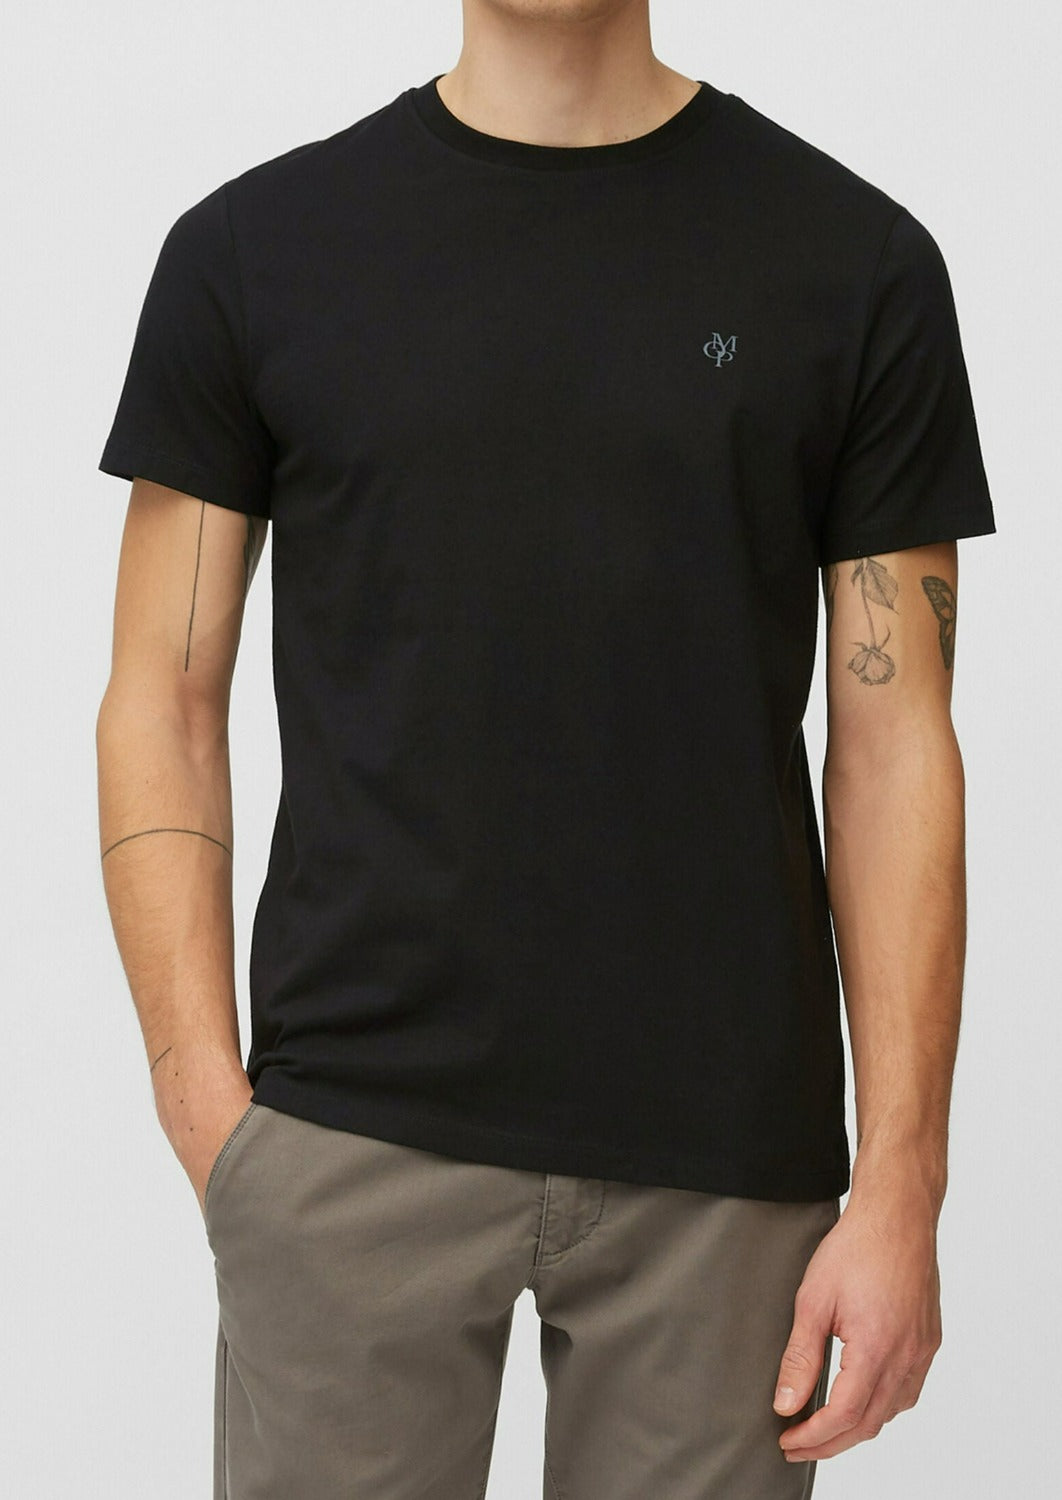 Zwarte Basic T-shirt van Organic Cotton